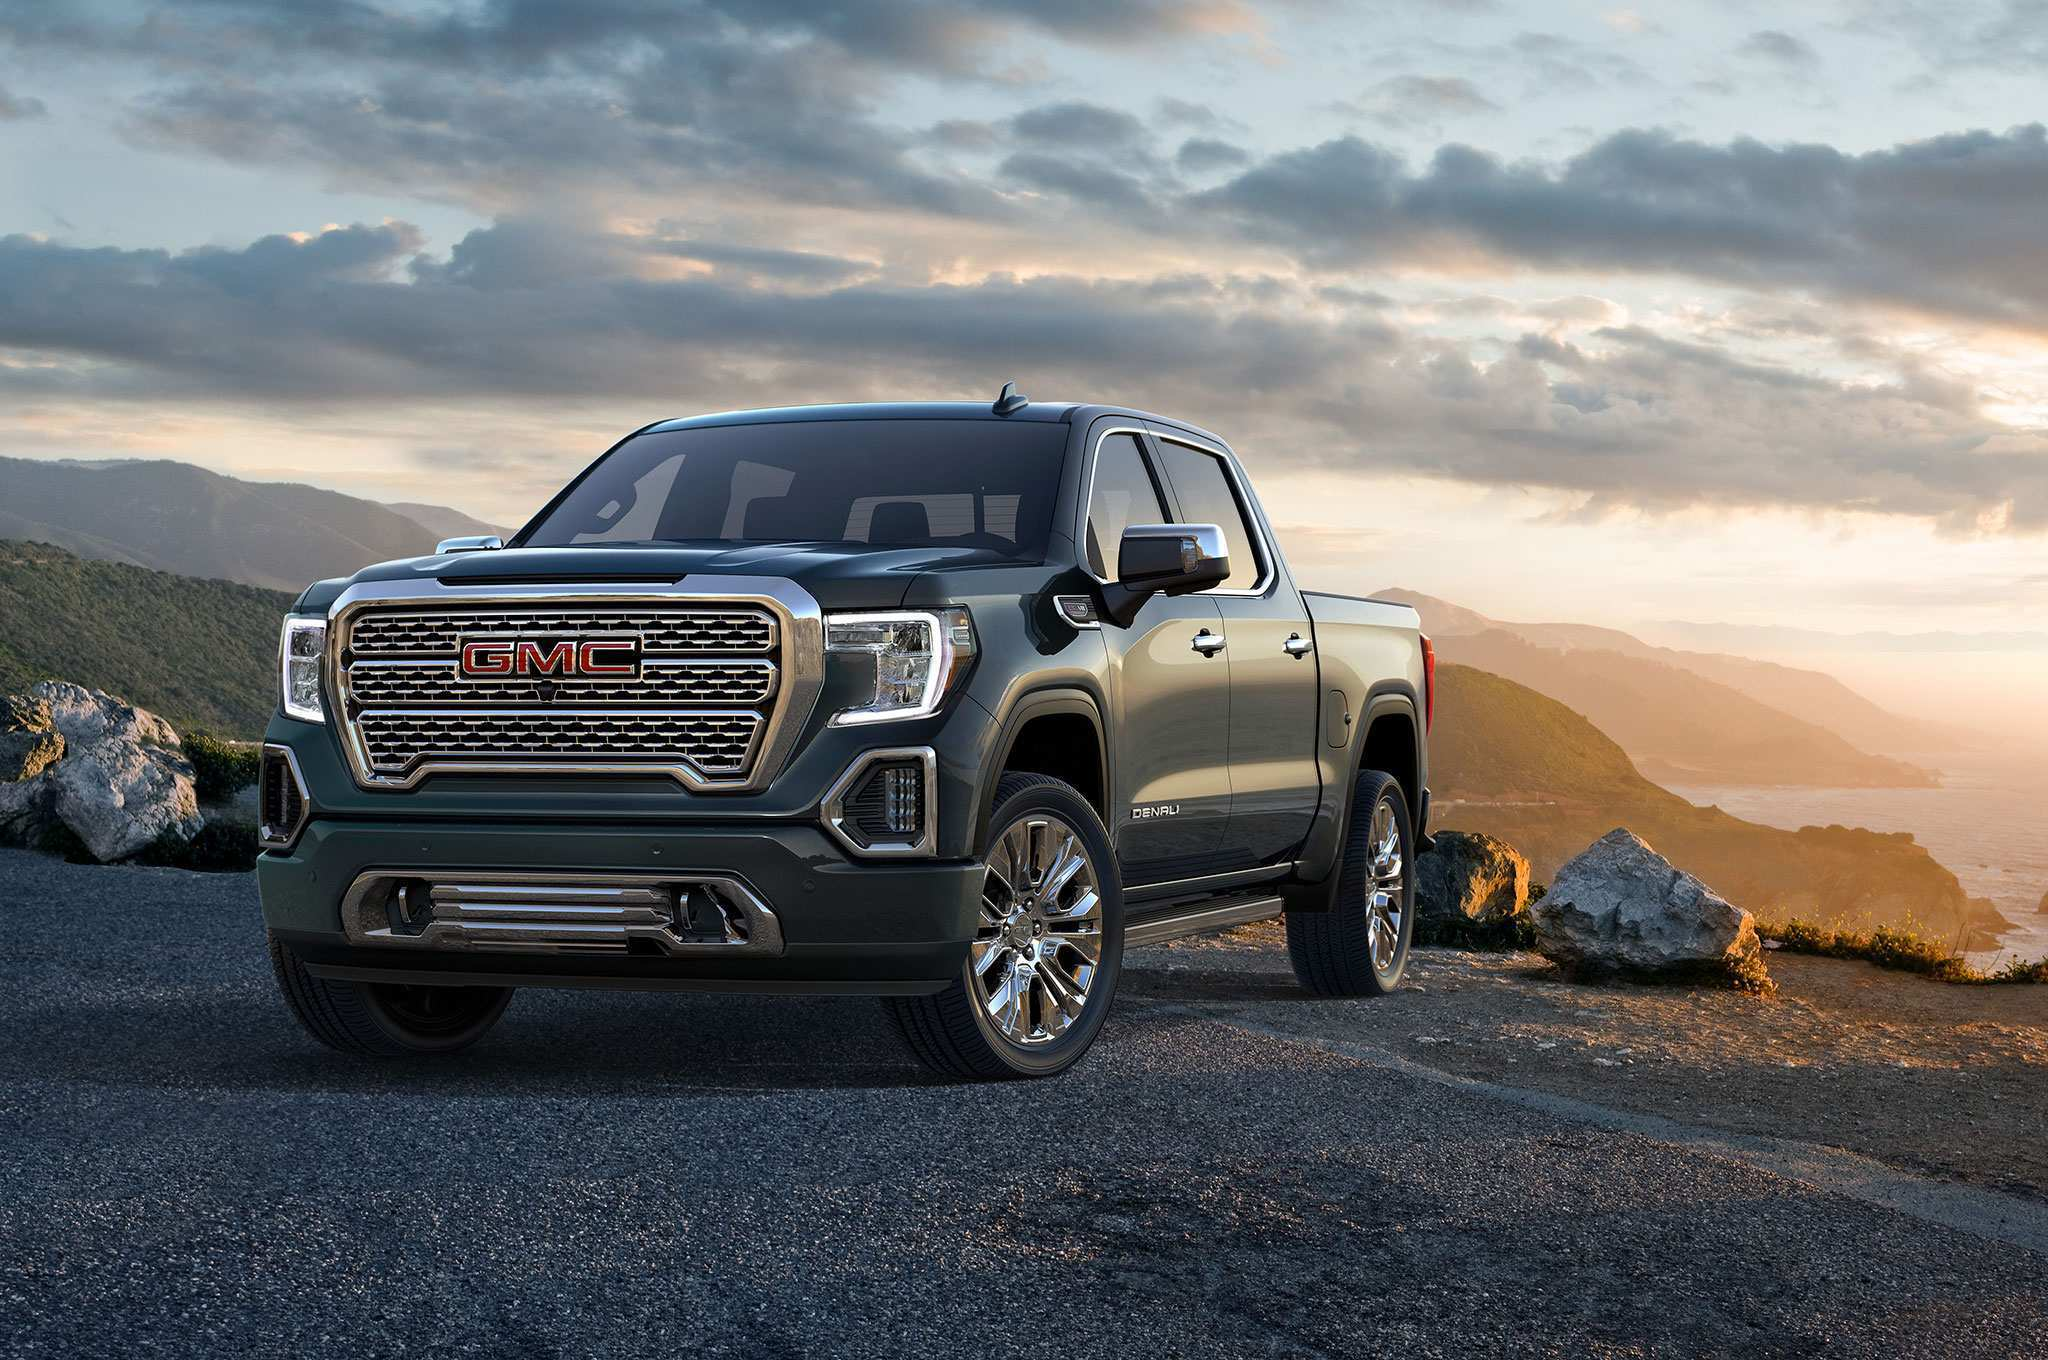 51 Gallery of 2019 Gmc Sonoma Spesification for 2019 Gmc Sonoma